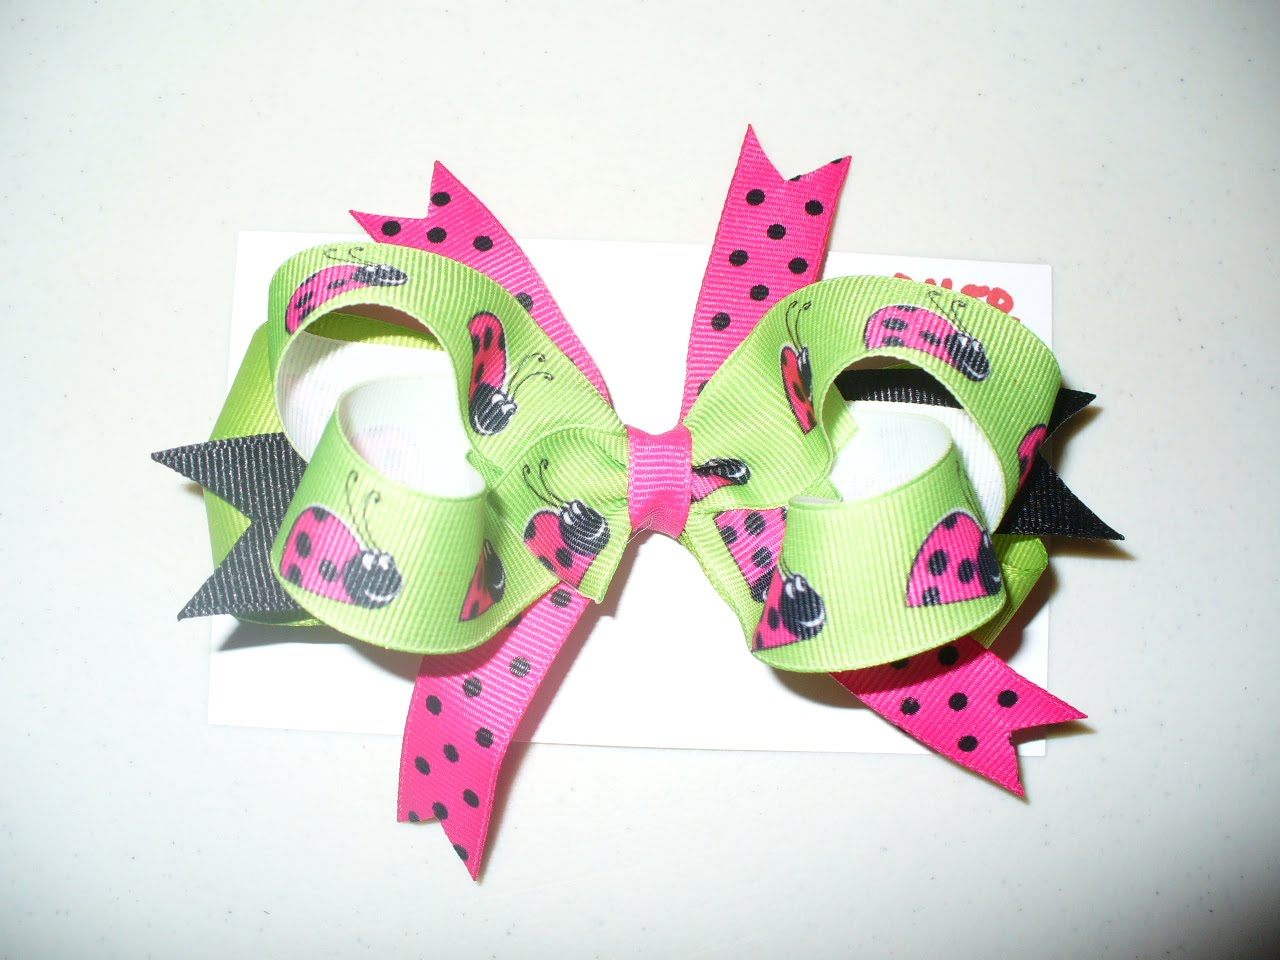 Absolutely adorable bows. I ordered three - birthday, Easter, and patriotic, along with a birthday onesie. They are beautiful, and they even sent an extra bow that matched the onesie as a.